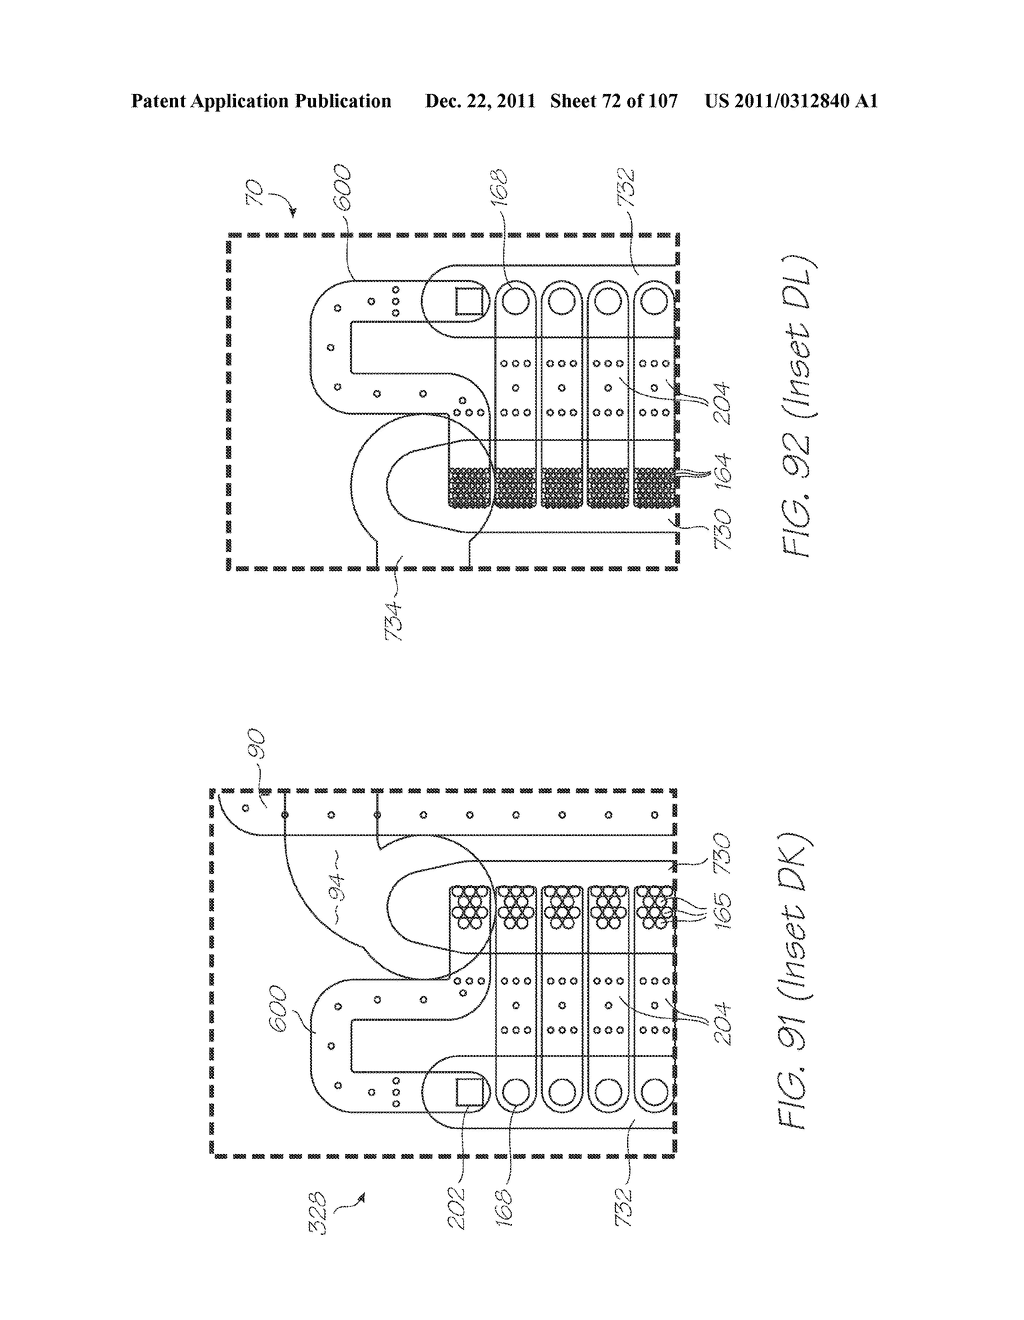 MICROFLUIDIC DEVICE WITH SAMPLE INLET, ELECTROCHEMILUMINESCENT PROBES AND     INTEGRATED PHOTOSENSOR FOR DETECTION OF TARGET SEQUENCES - diagram, schematic, and image 73